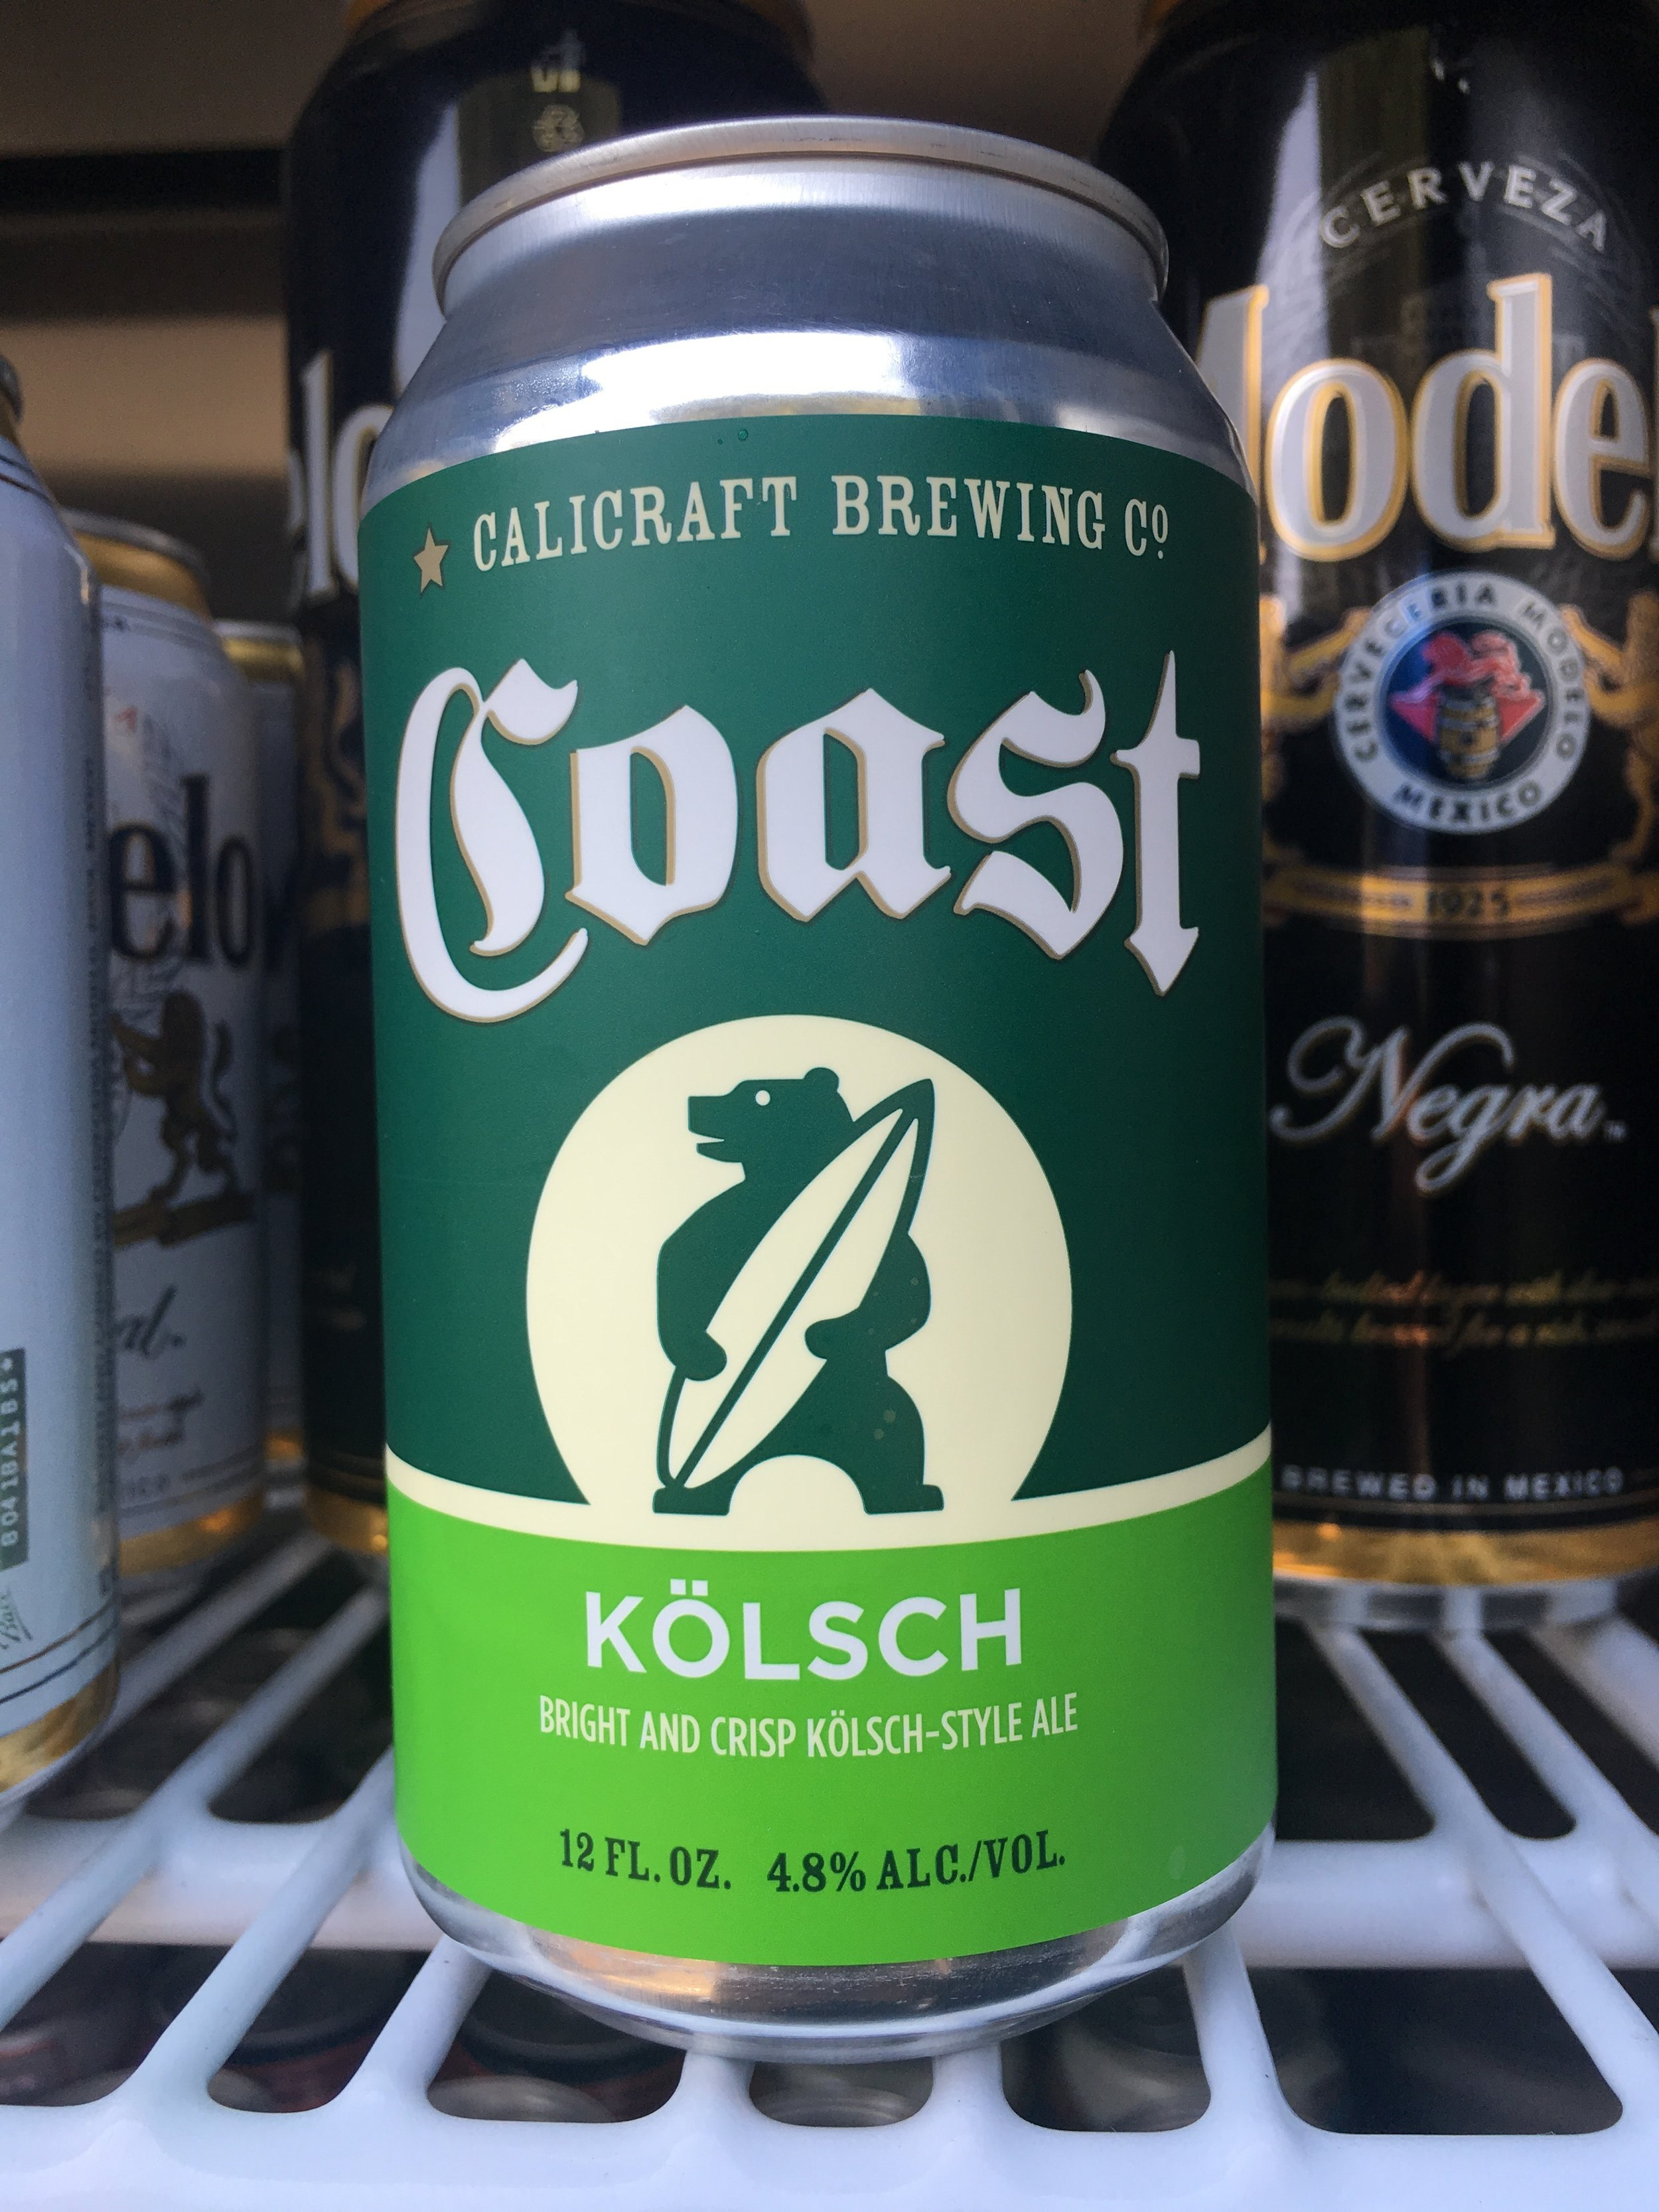 Calicraft Brewing - Coast Kolsch